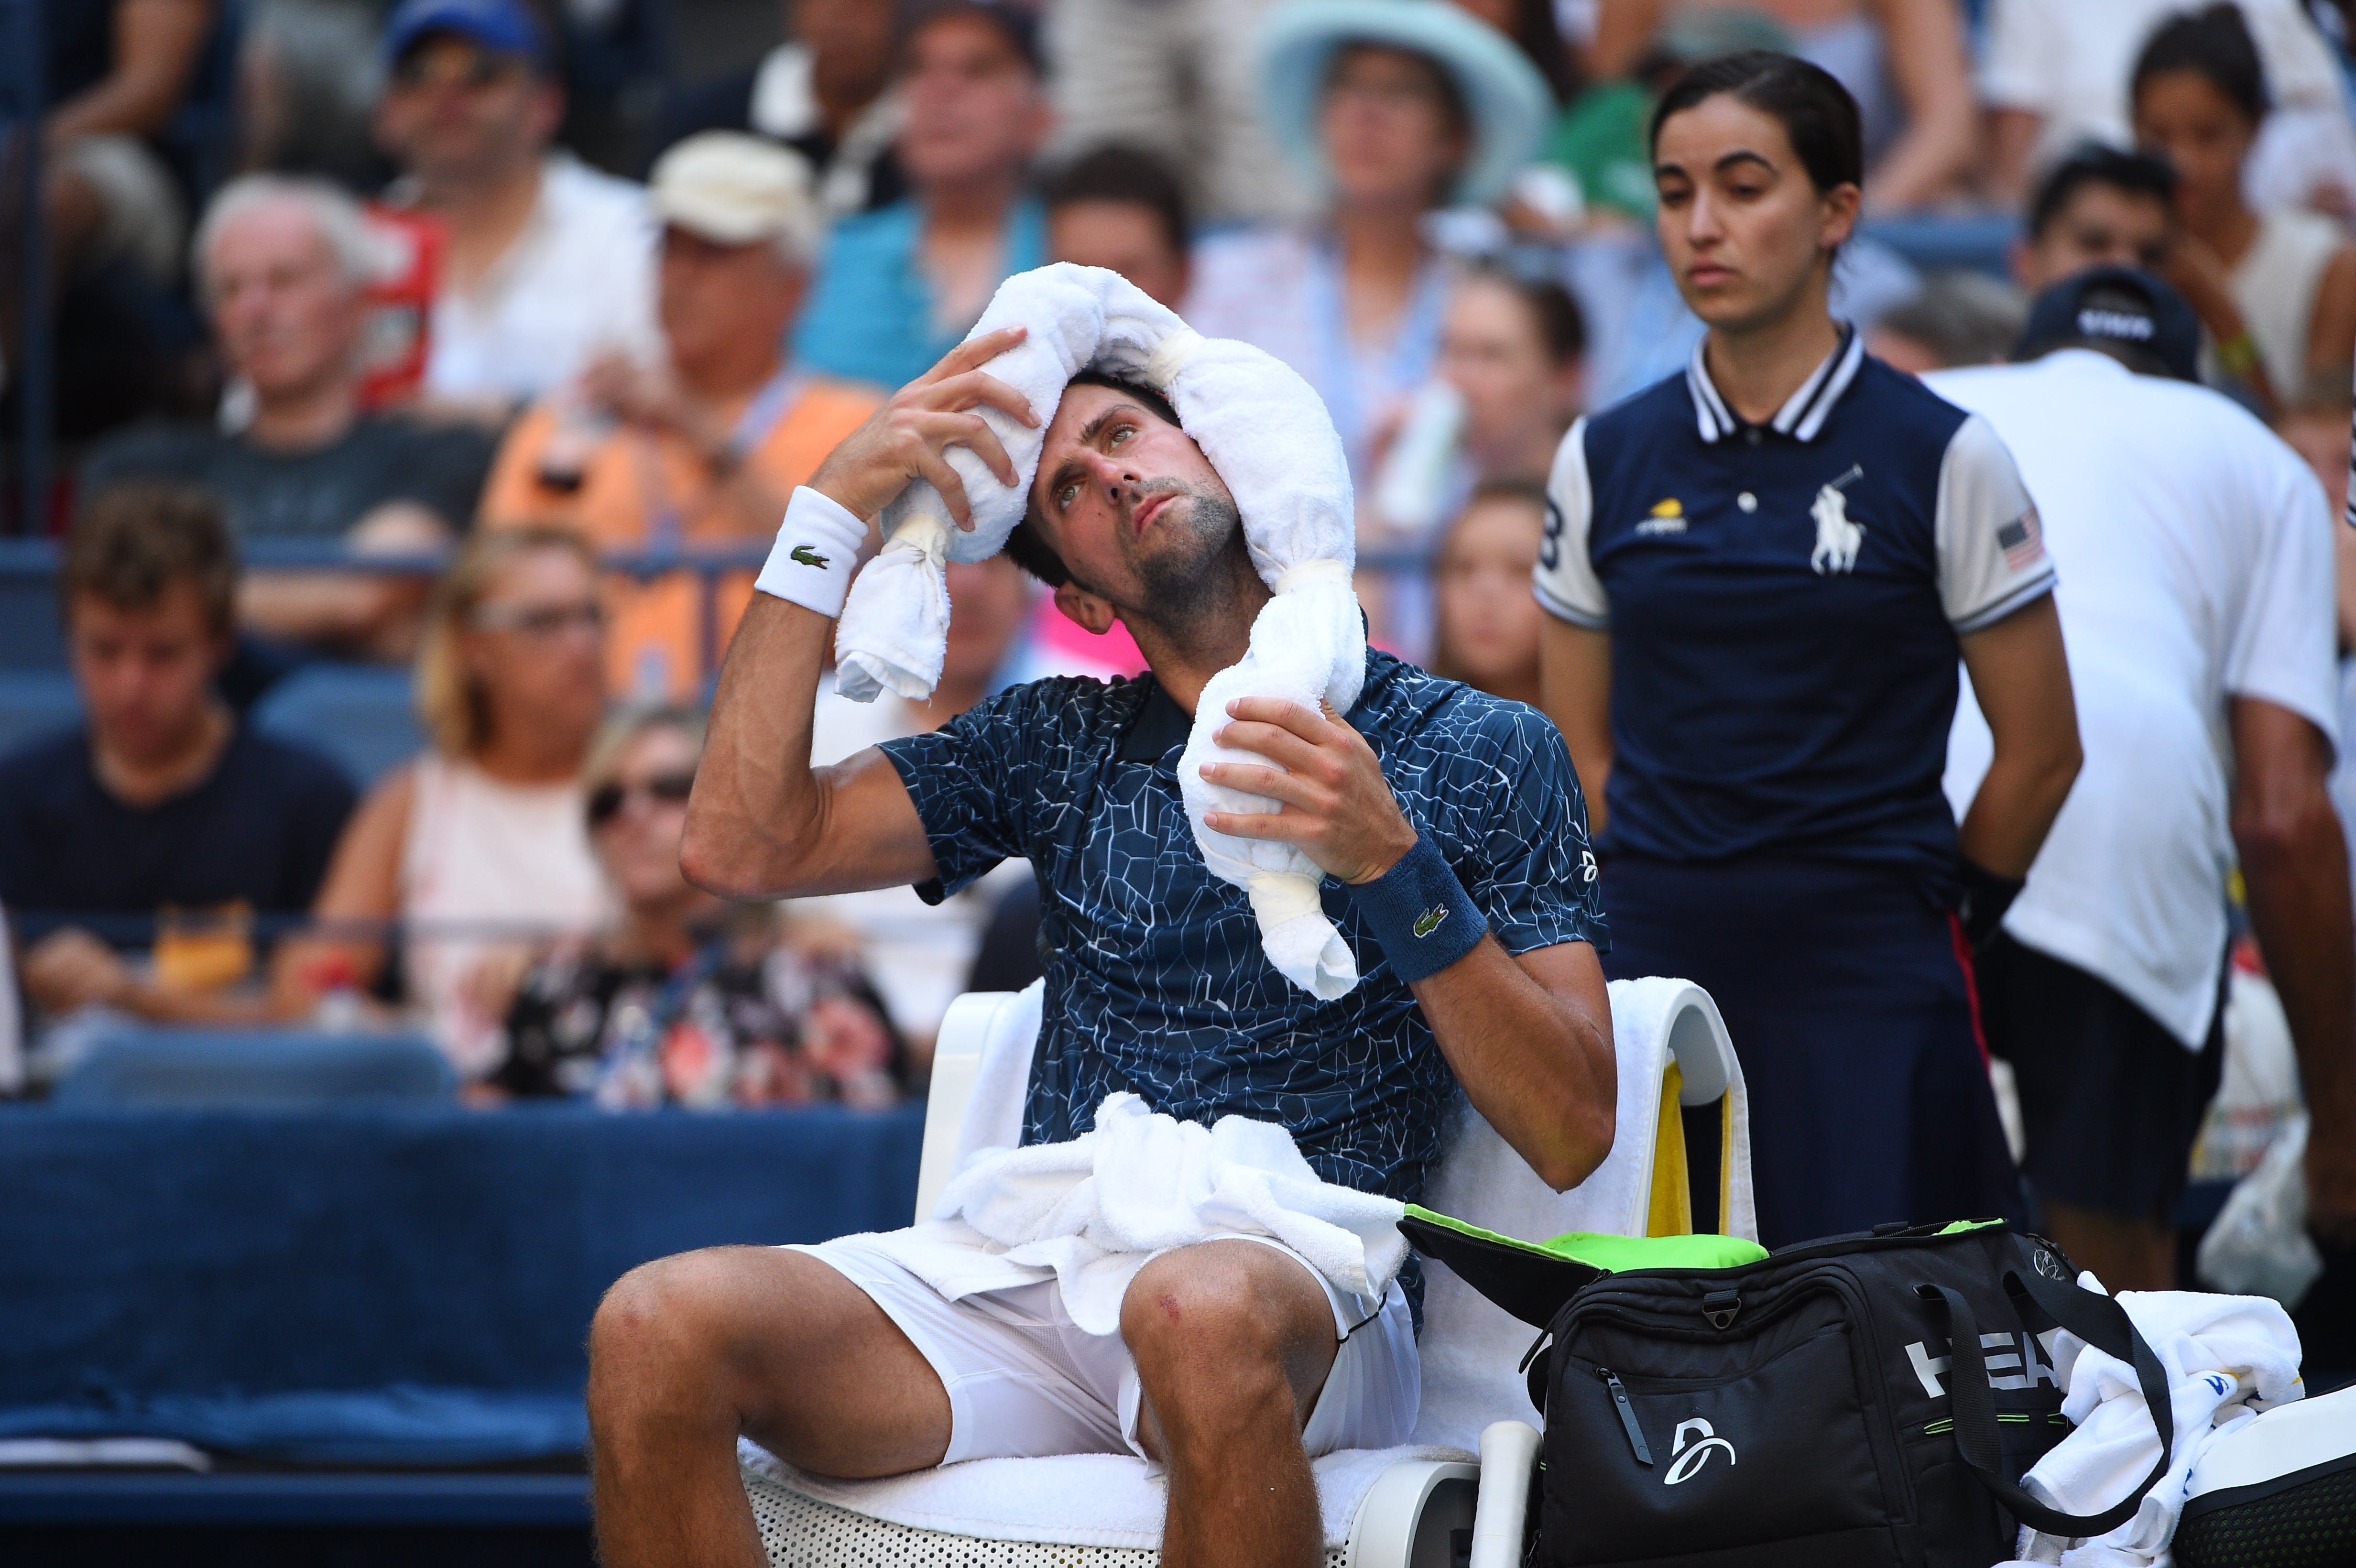 Novak Djokovic and his ice towel at the US Open 2018